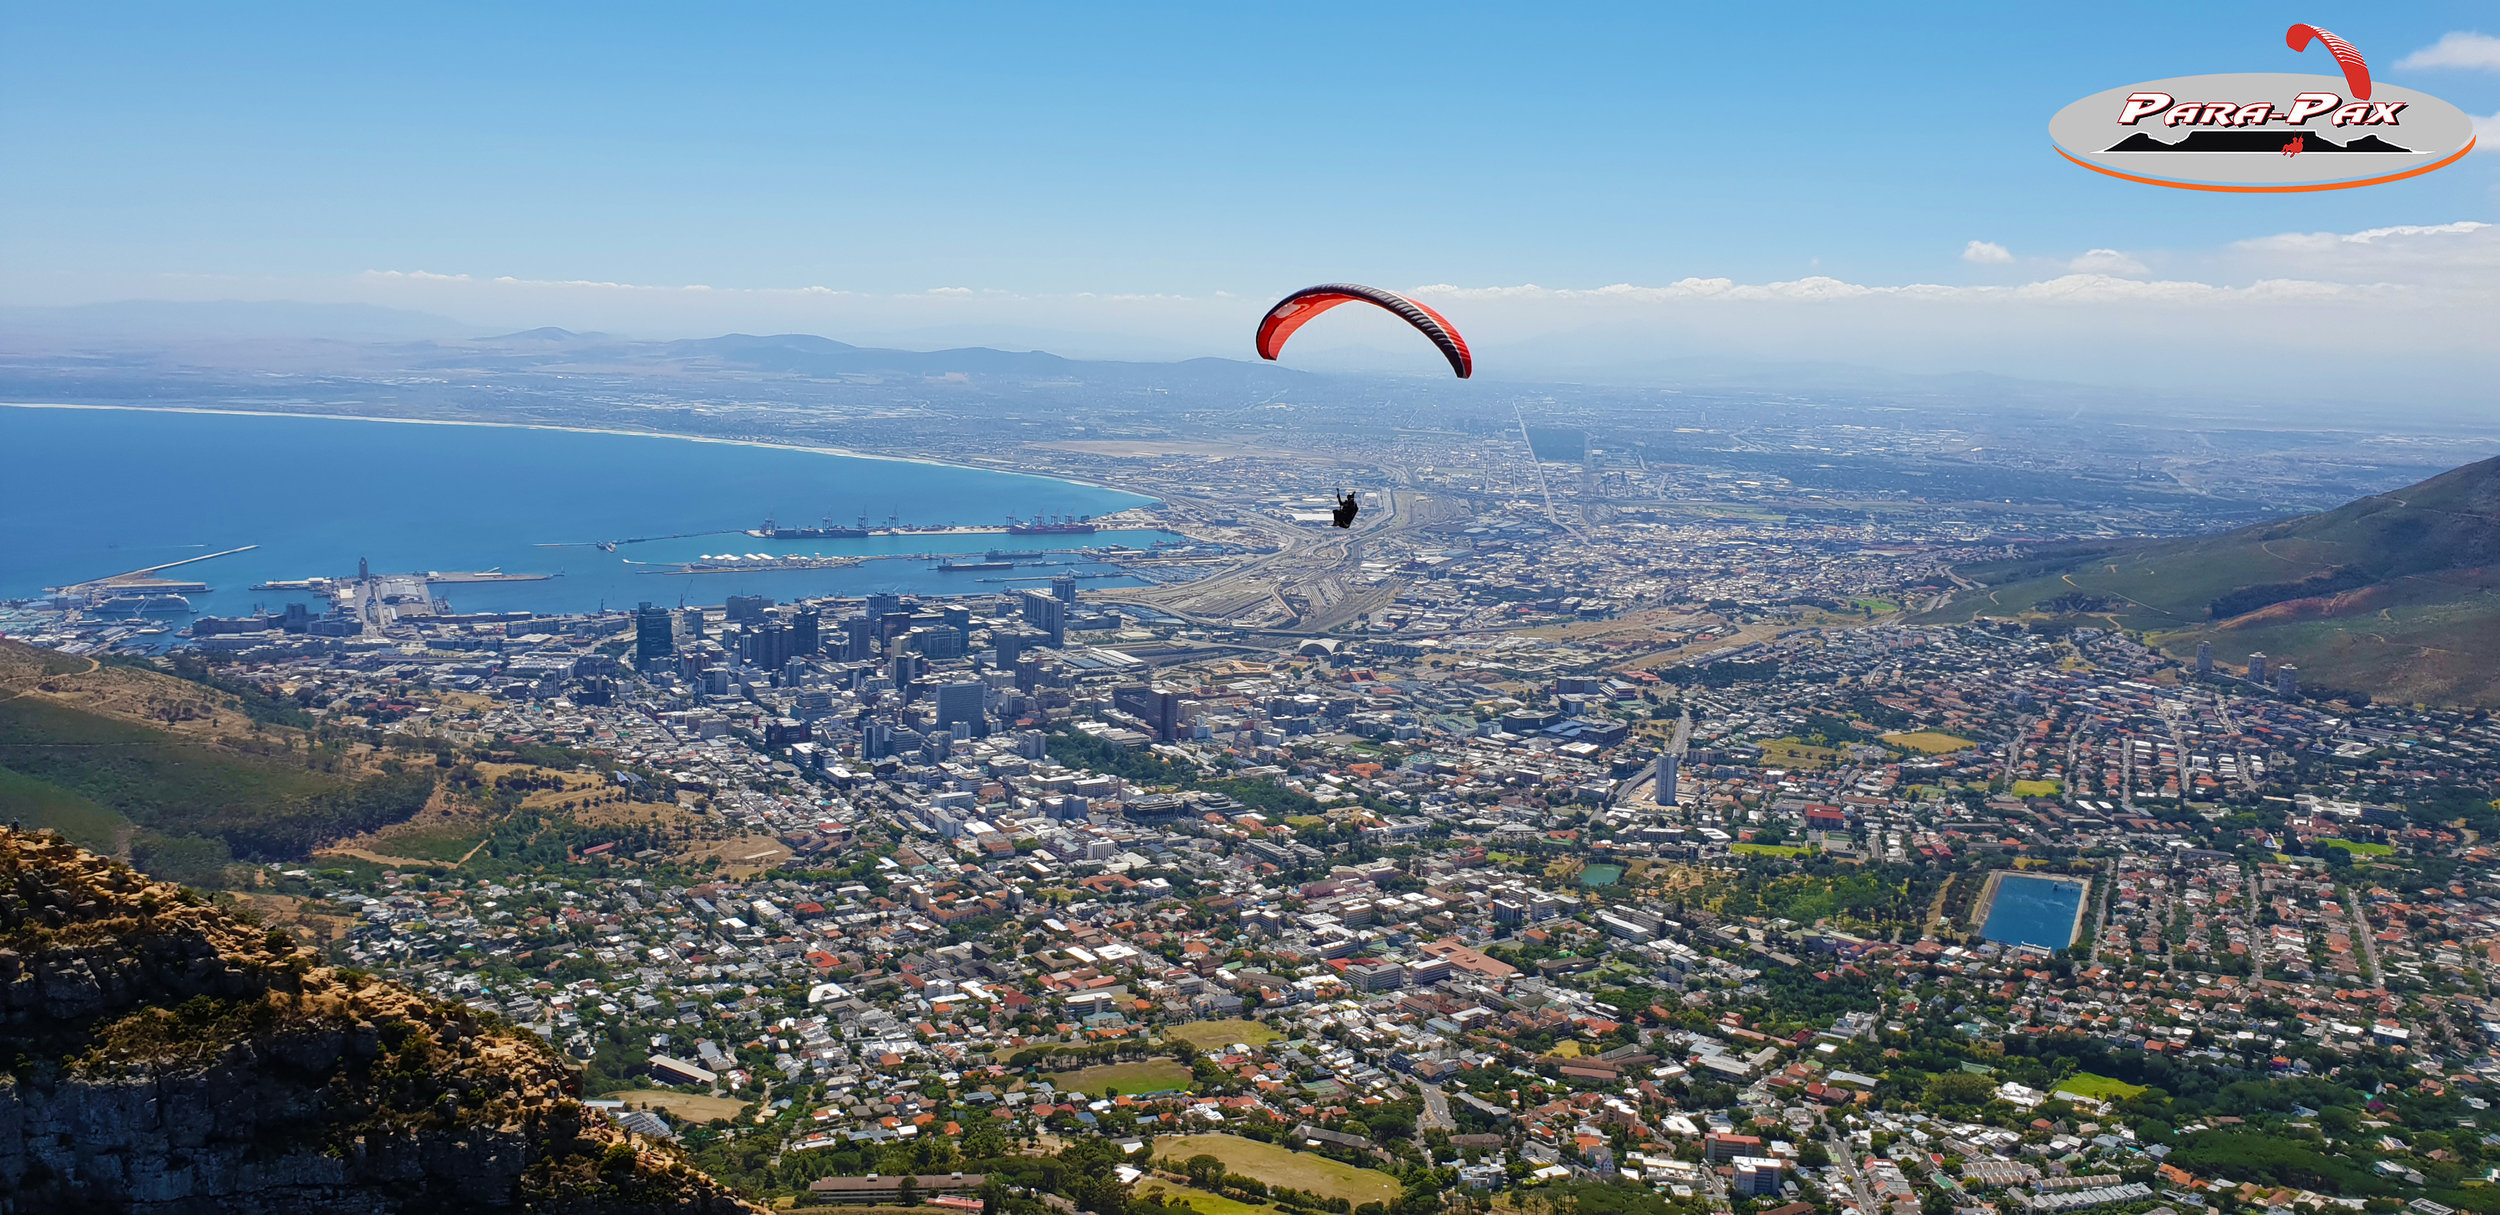 DAY TOUR - CAPE TOWN   Contact us directly for more information on day tours. Fly over the city while admiring Table Mountain, the beaches and the winelands. An experienced guide will accompany you for the day.